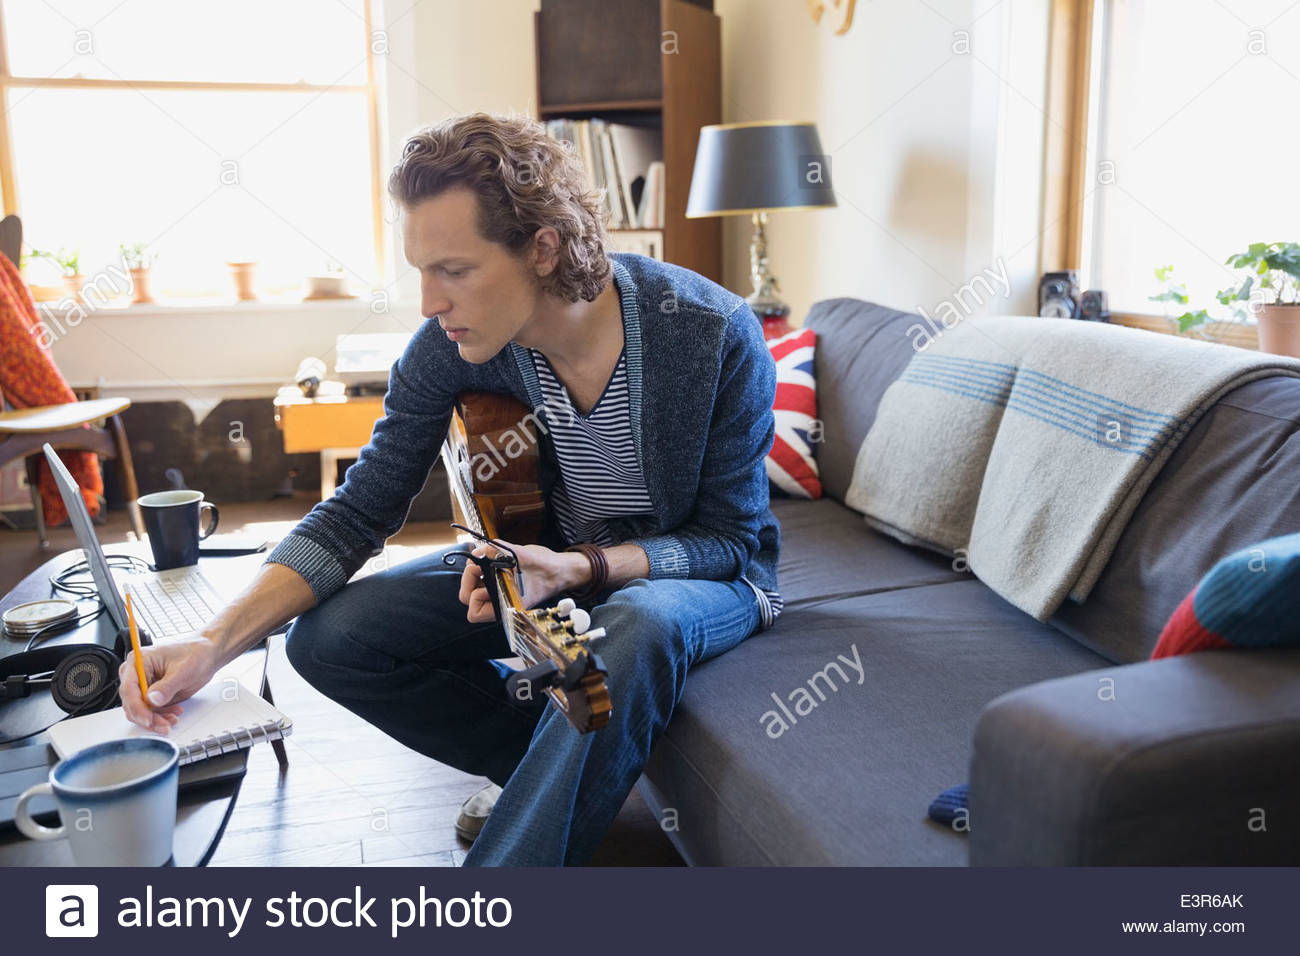 Musician with guitar writing music in living room Stock Photo